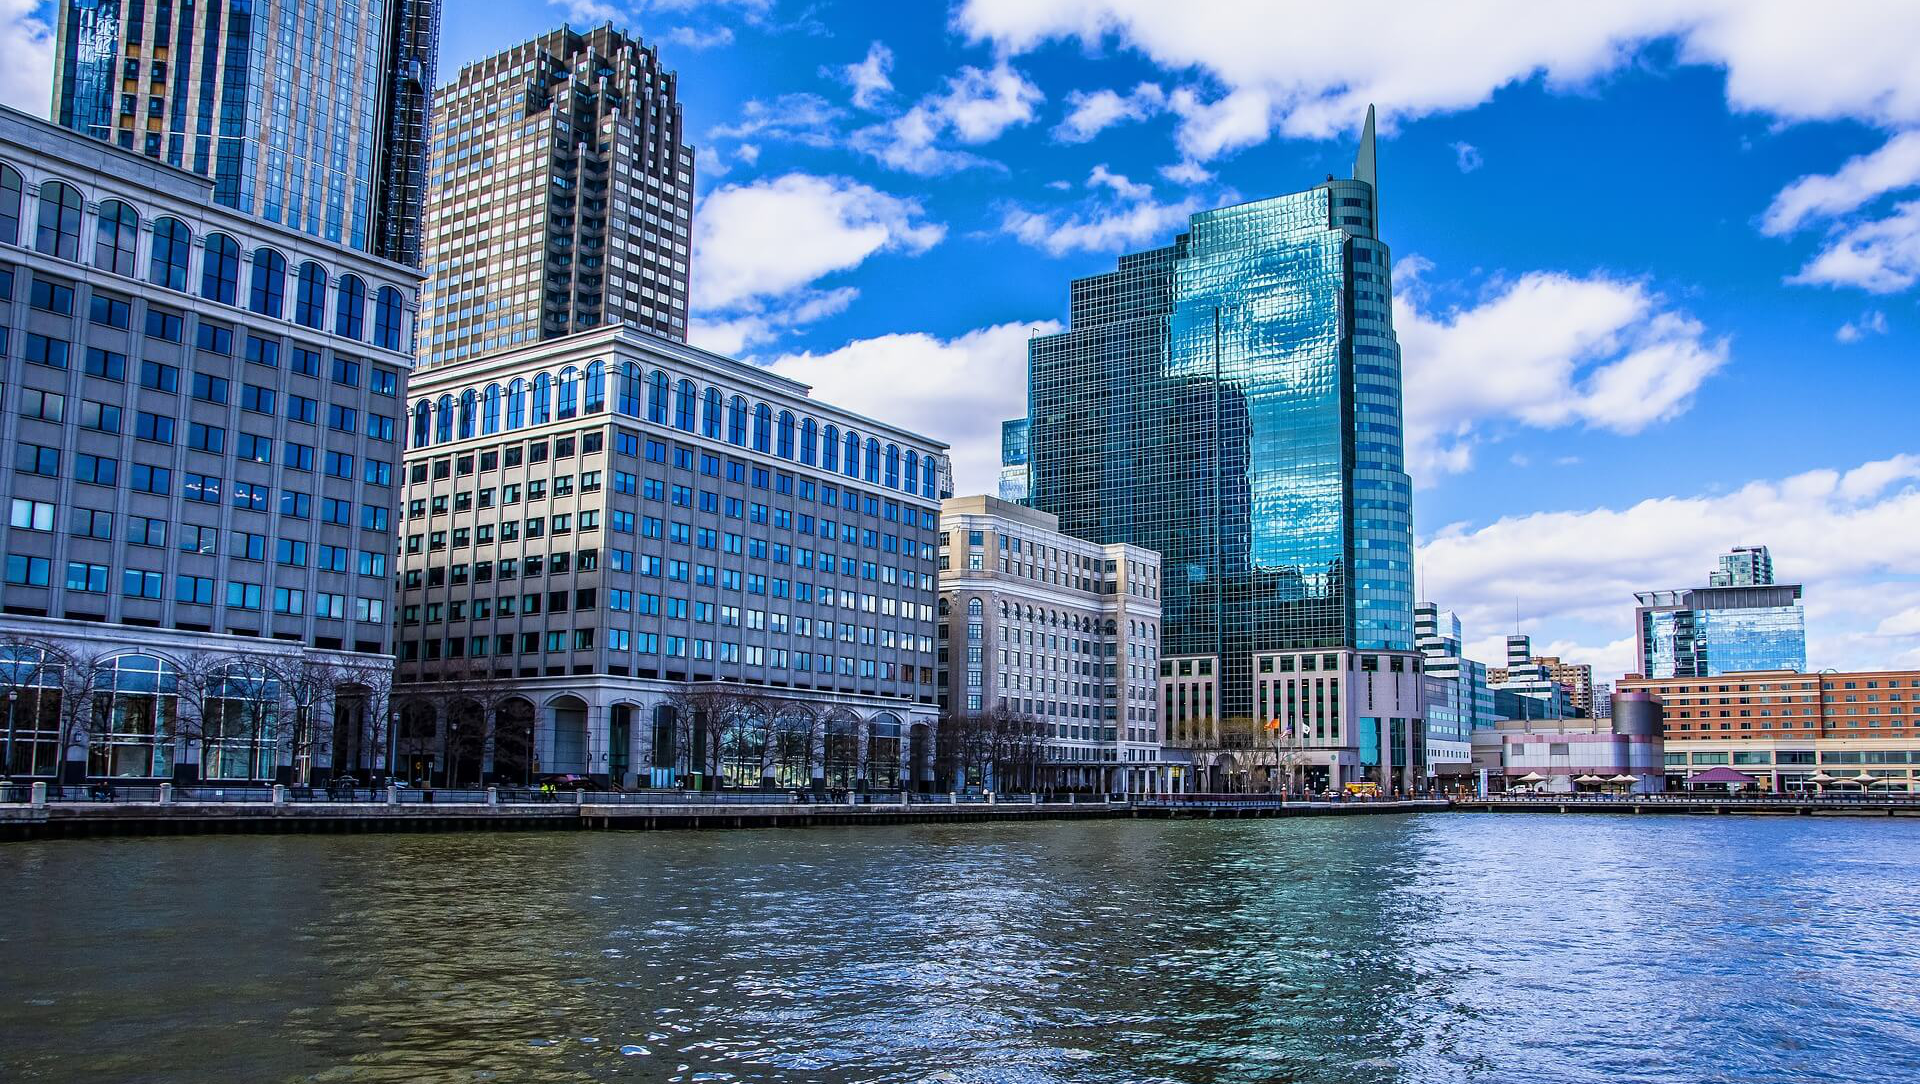 A RESILIENT JERSEY CITY FOR THE FUTURE OF OUR COMMUNITY